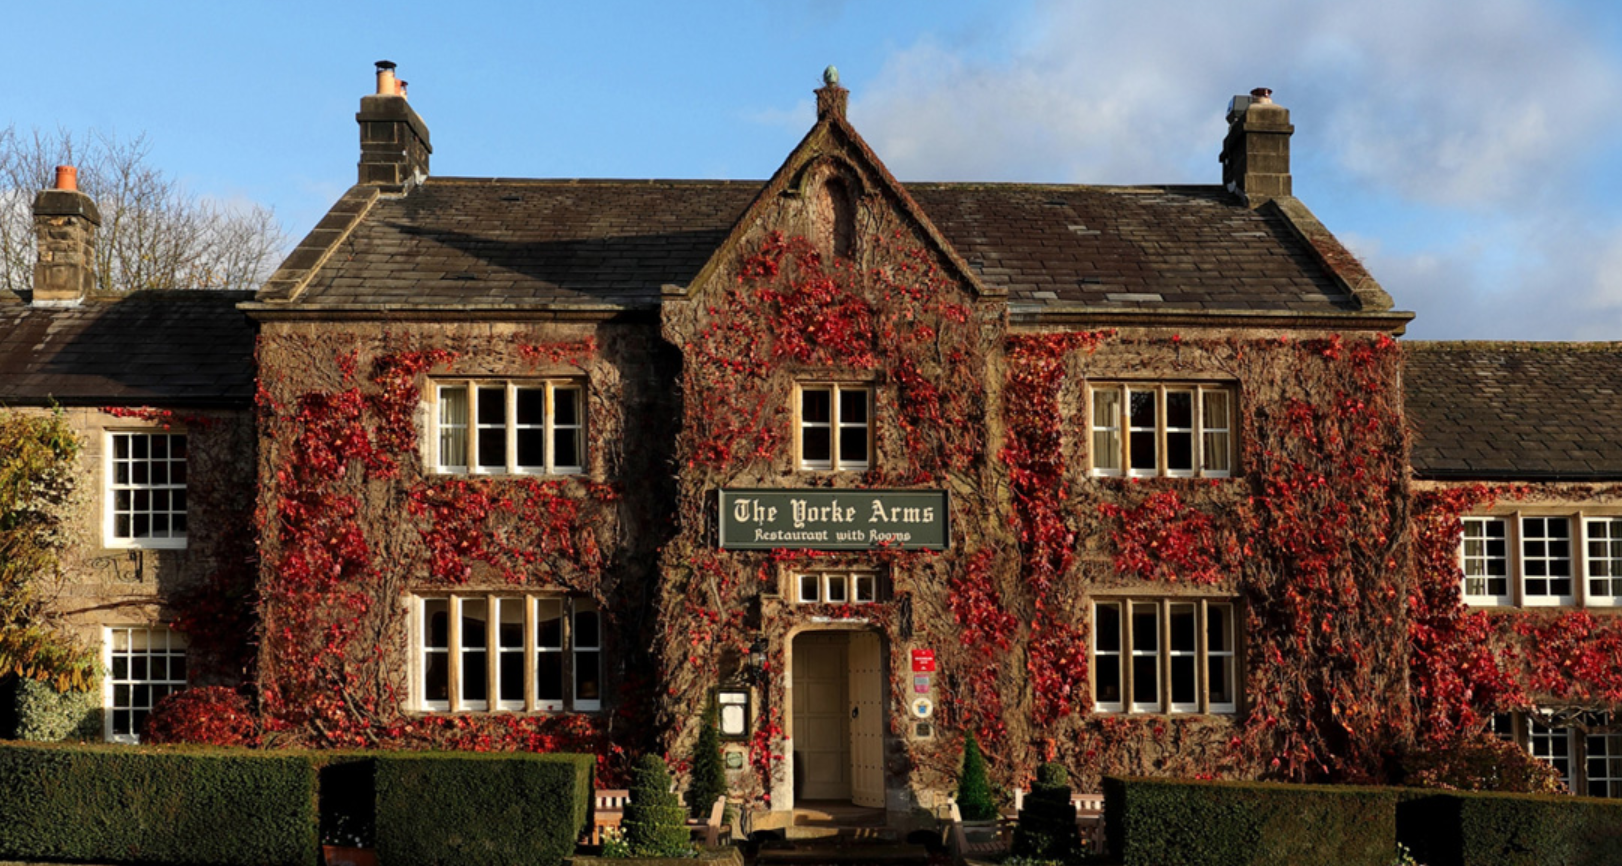 The Yorke Arms Hotel